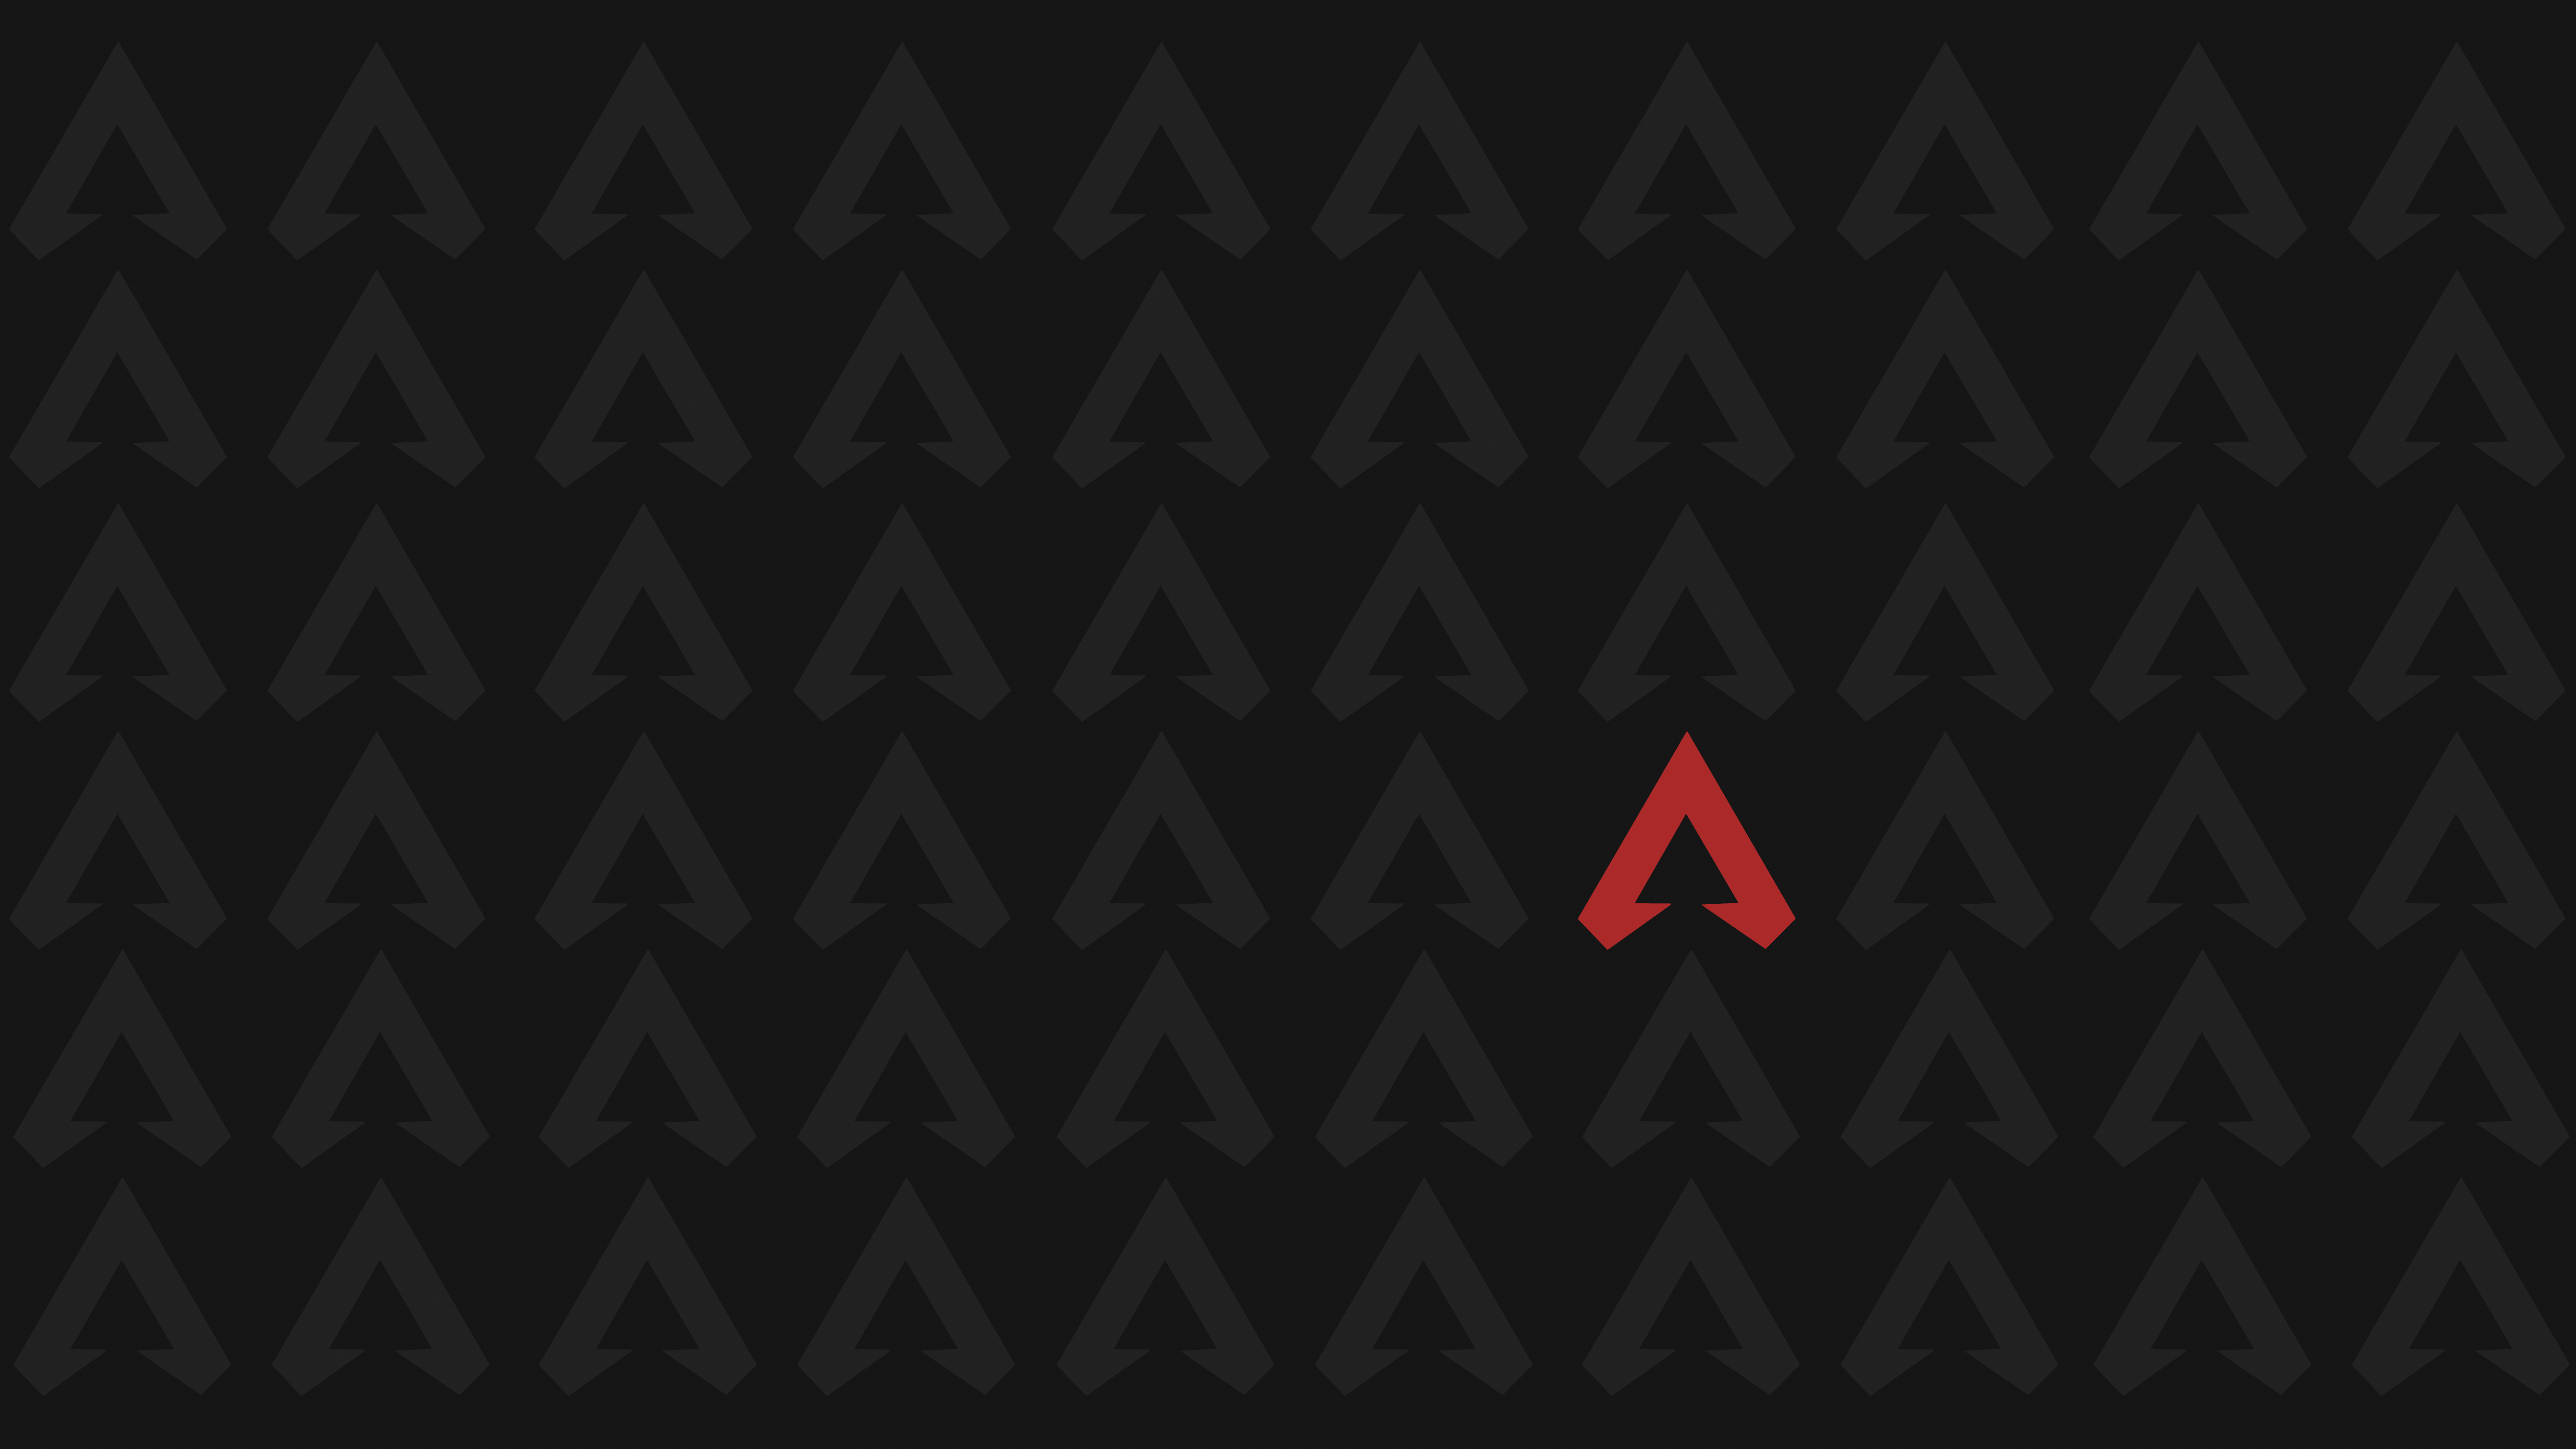 Threw together a minimalist Apex wallpaper for my PC and thought 6000x3375